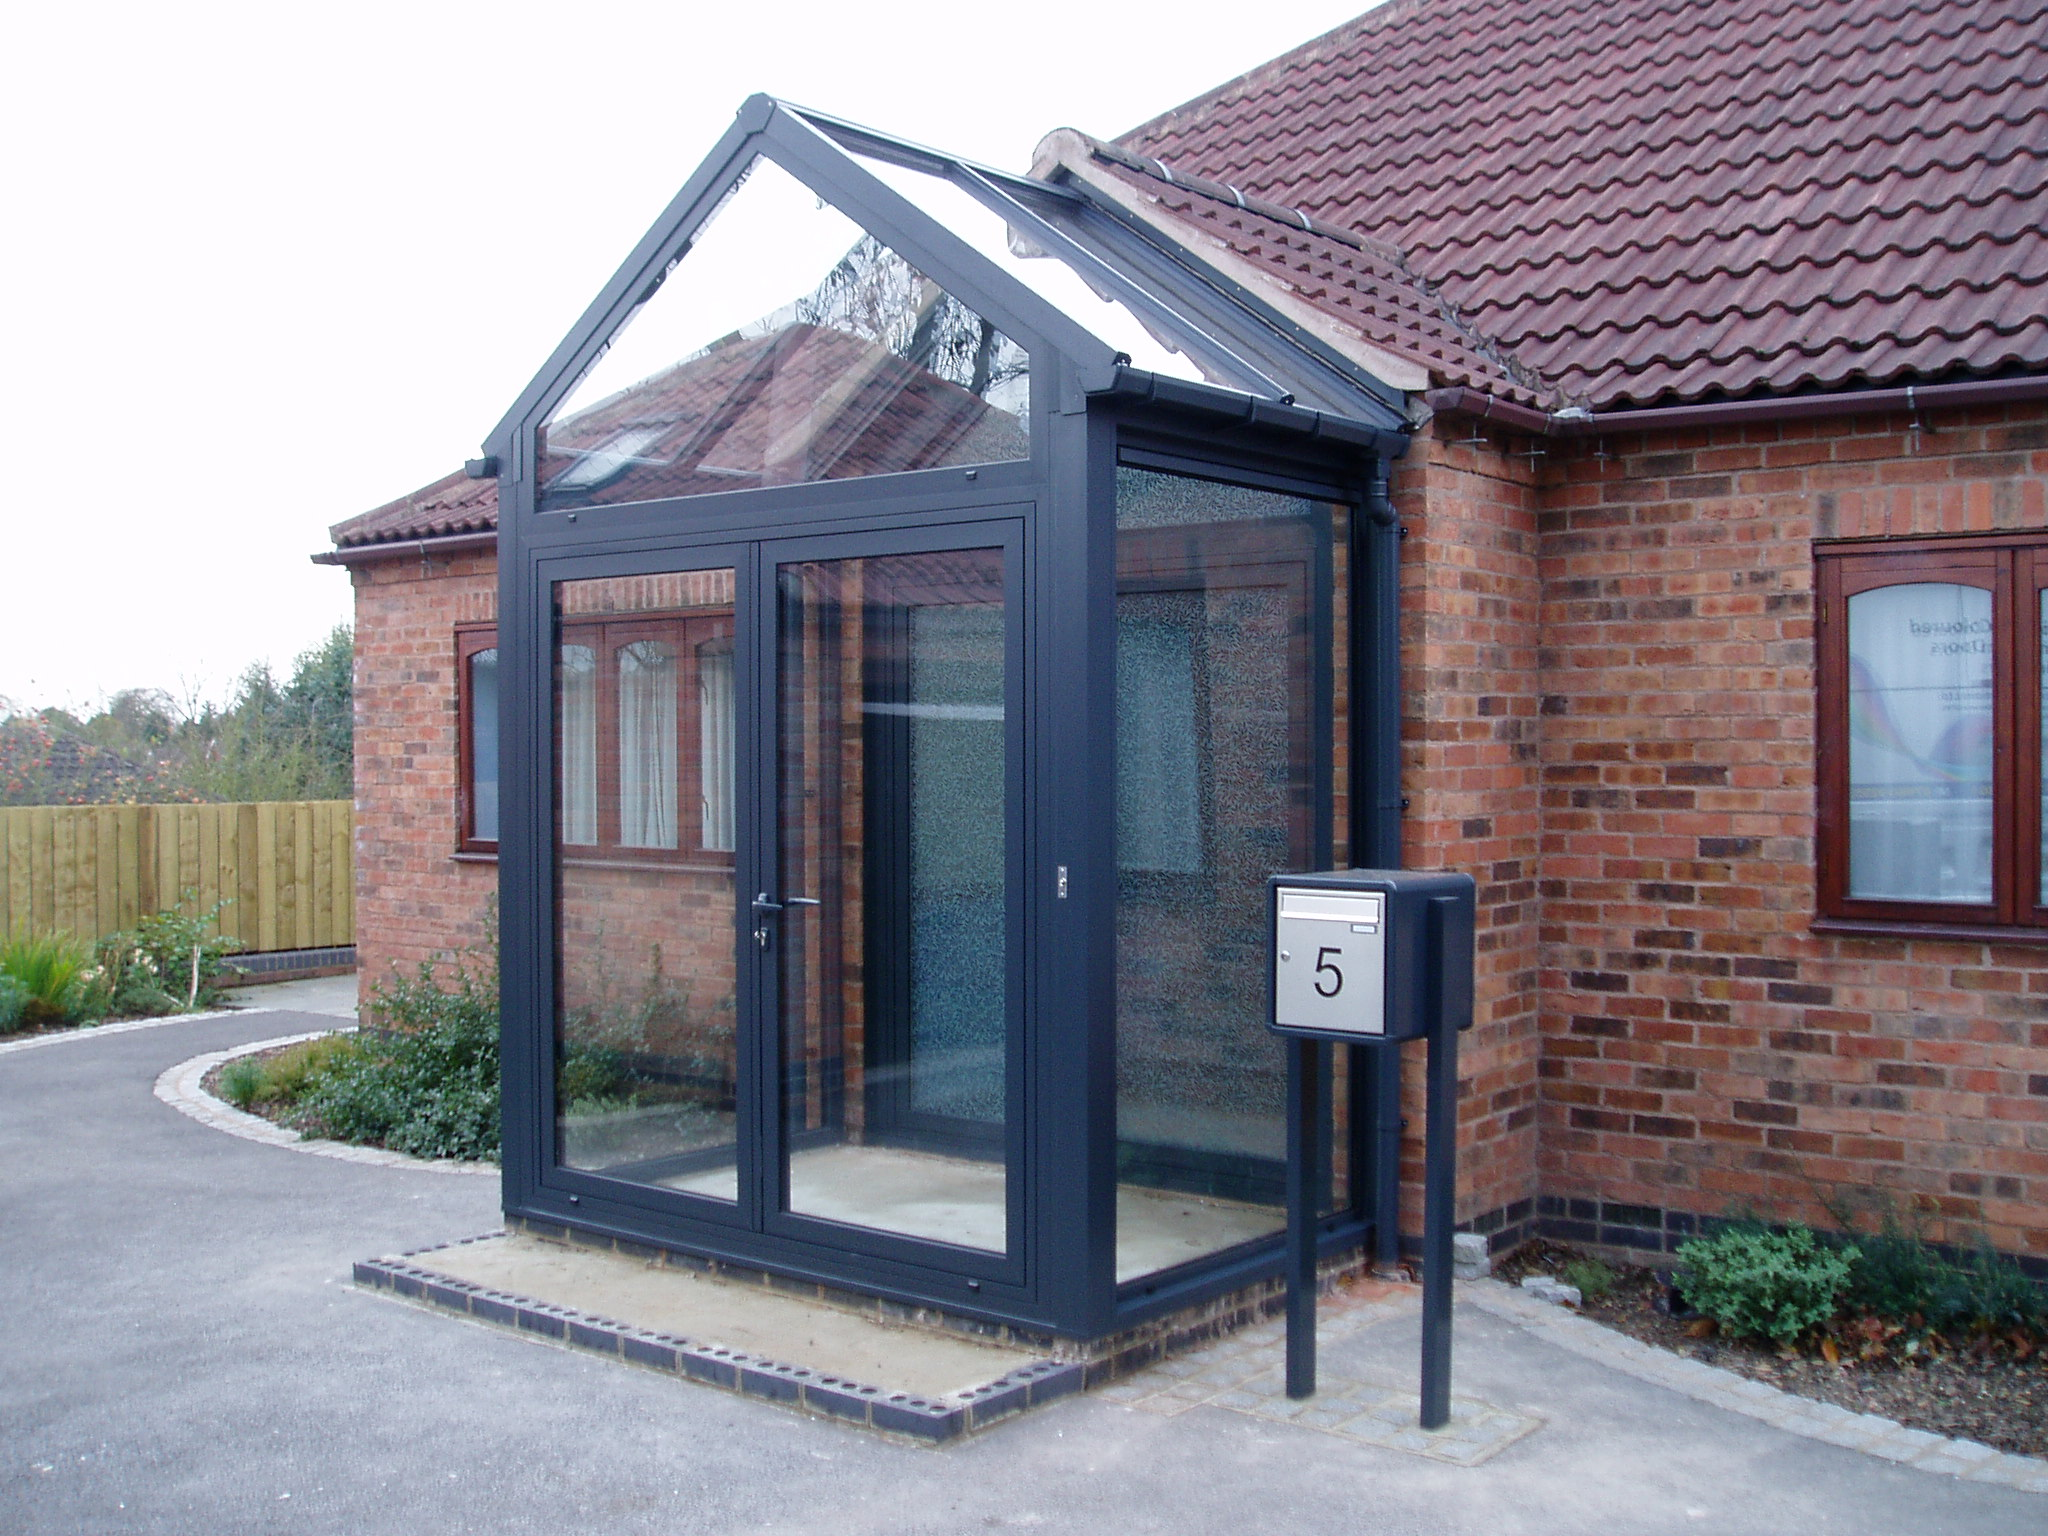 Entrance Porch With Glass Apex And Roof (2048×1536) |  Rozbudowa_inspiracje | Pinterest | Extensions, Porch And House